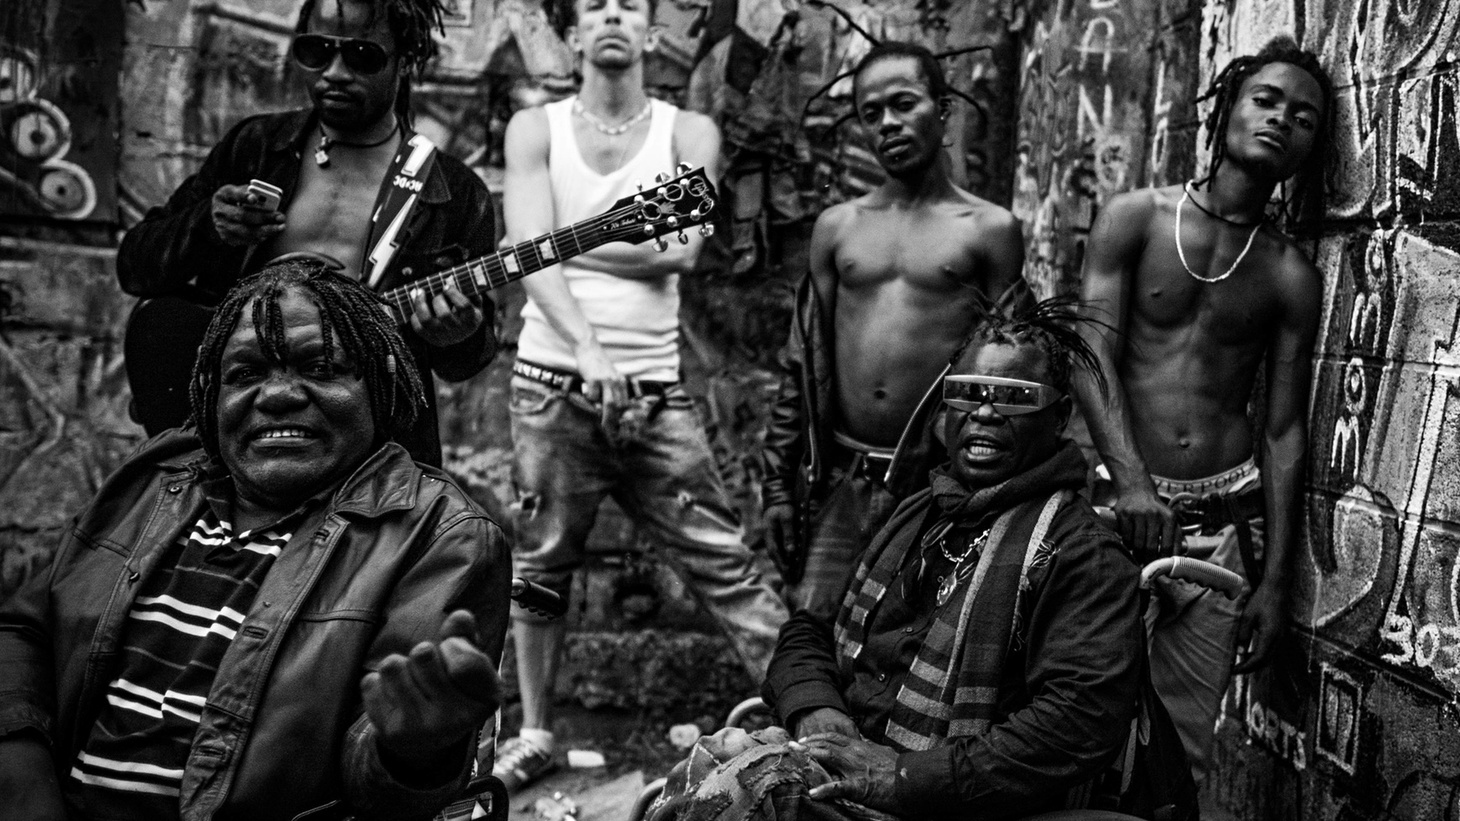 An album that our own Garth Trinidad has been championing on-air, Mbongwana Star's new record features a Congolese seven-piece band that marries traditional African rhythms with post-punk.